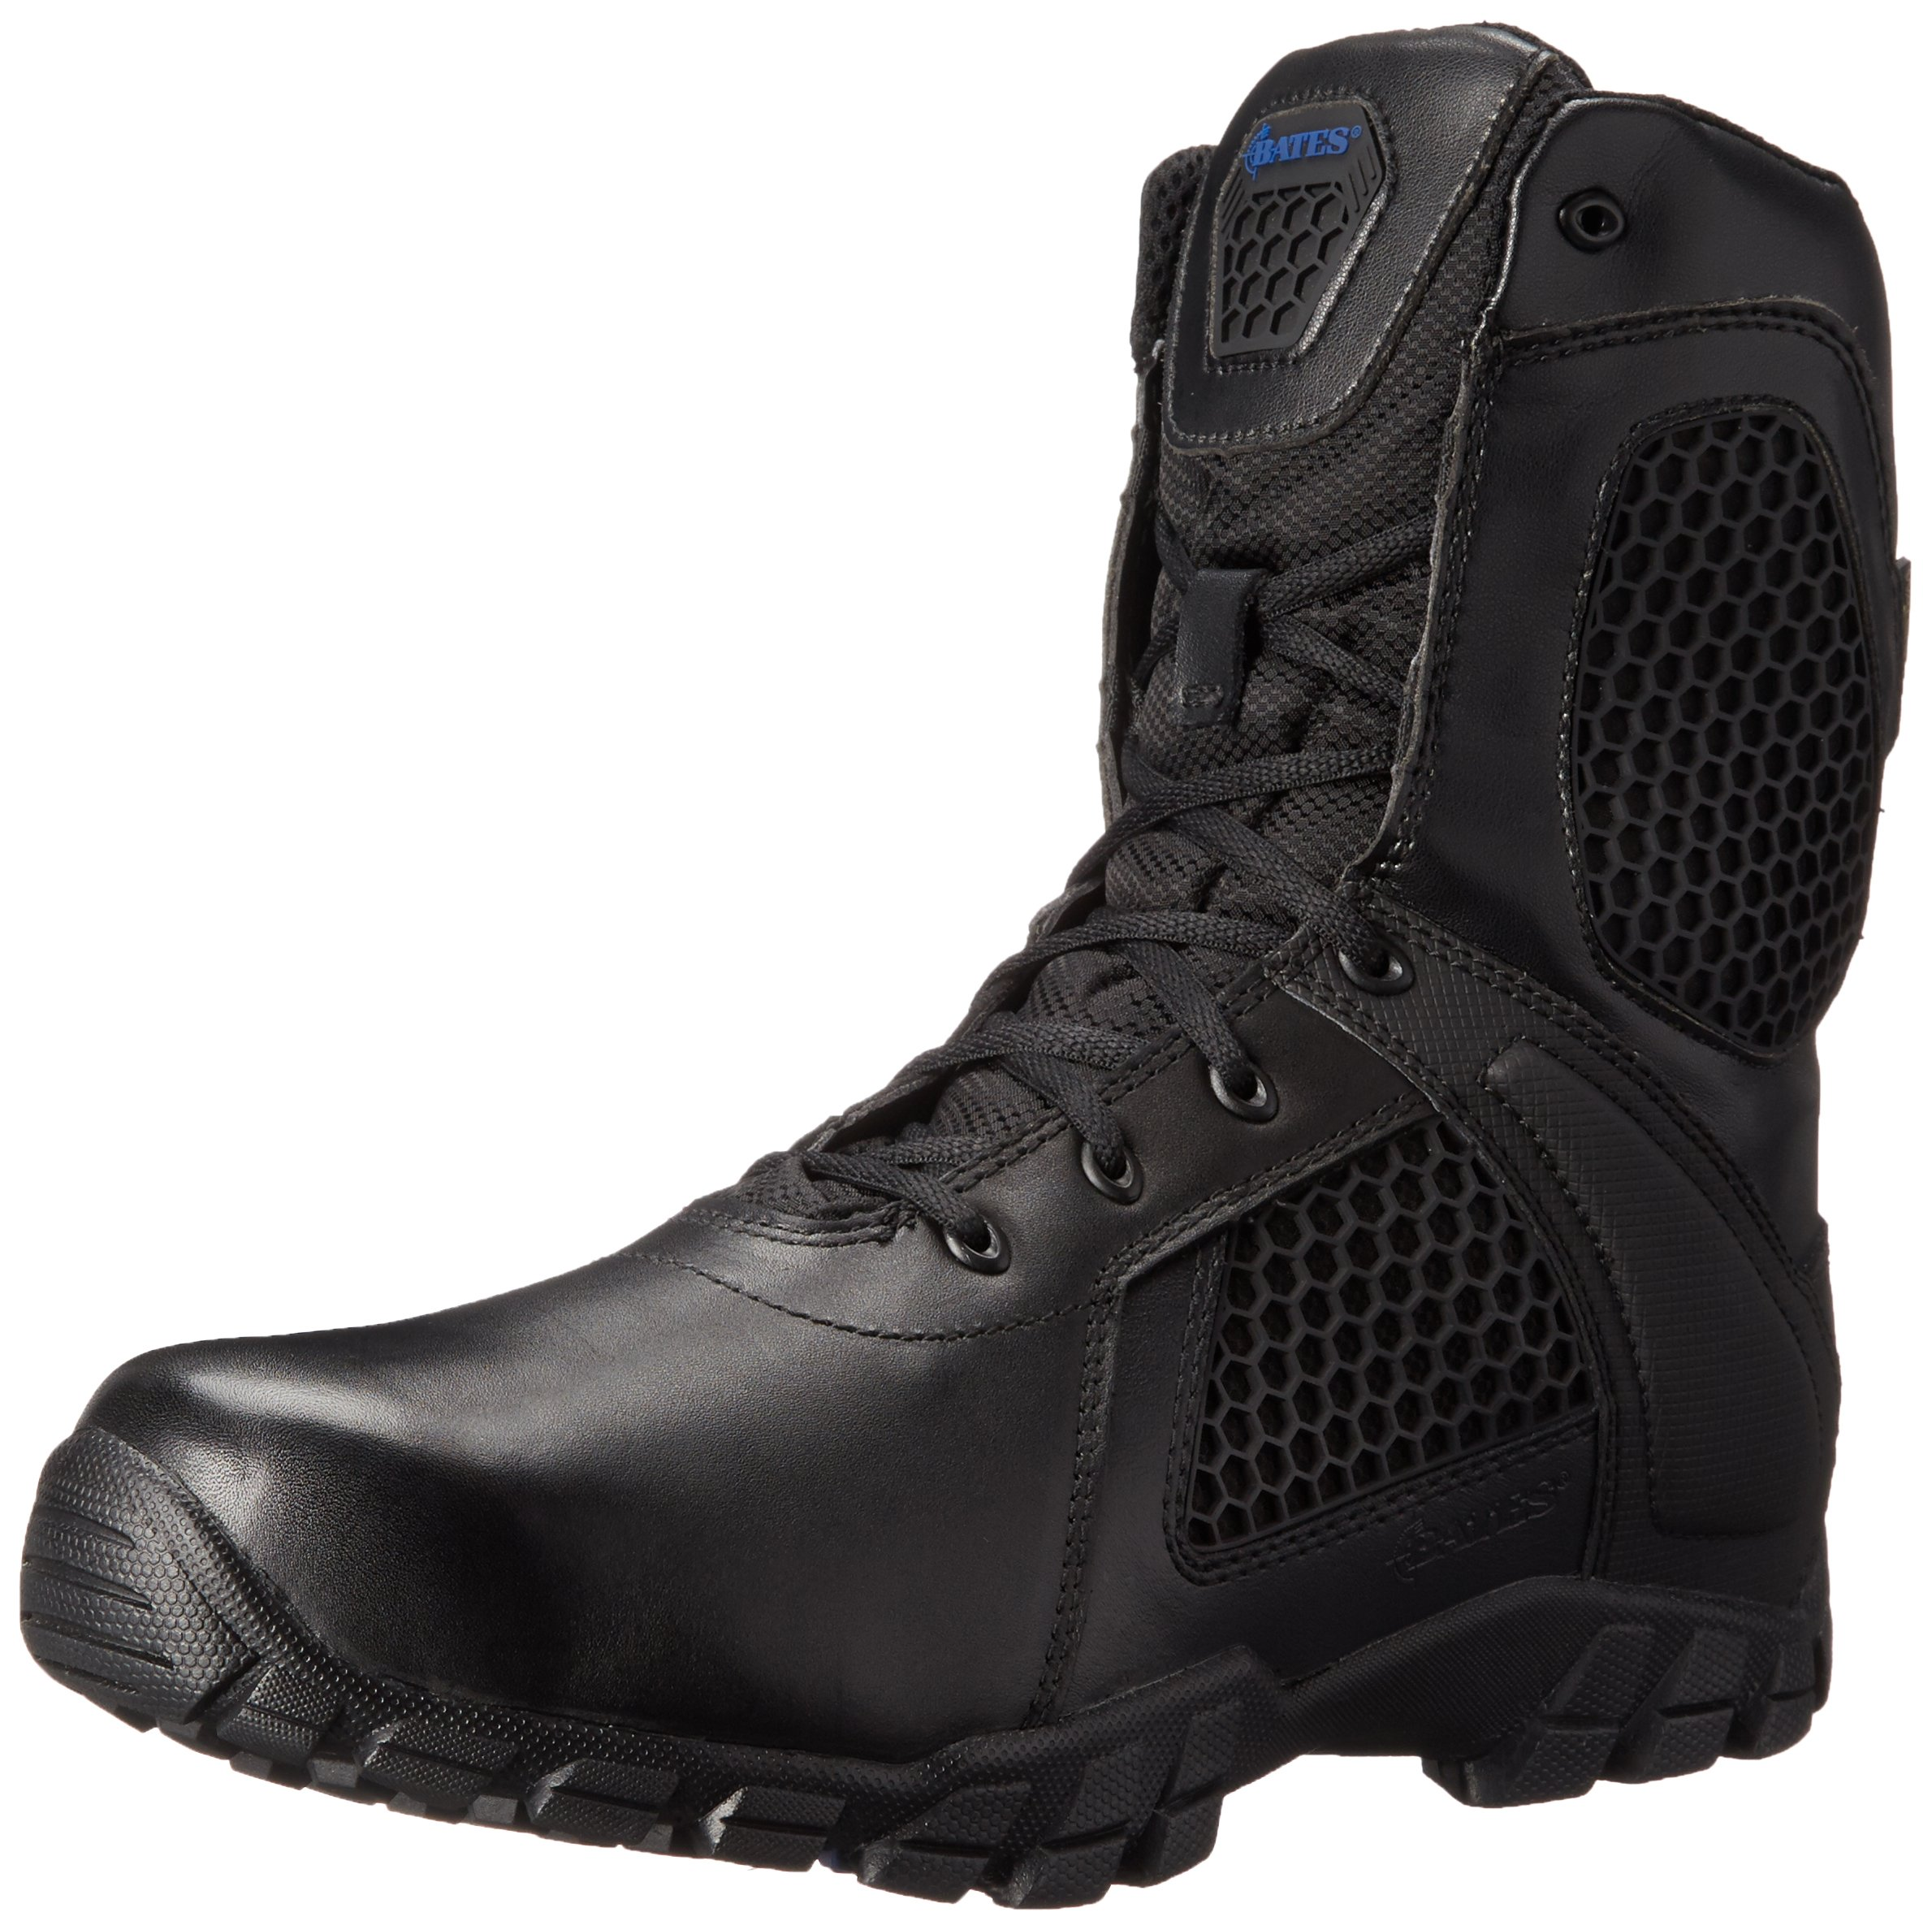 Bates Men's 8 Inch Strike Side Zip Waterproof Tactical Boot, Black, 10 M US